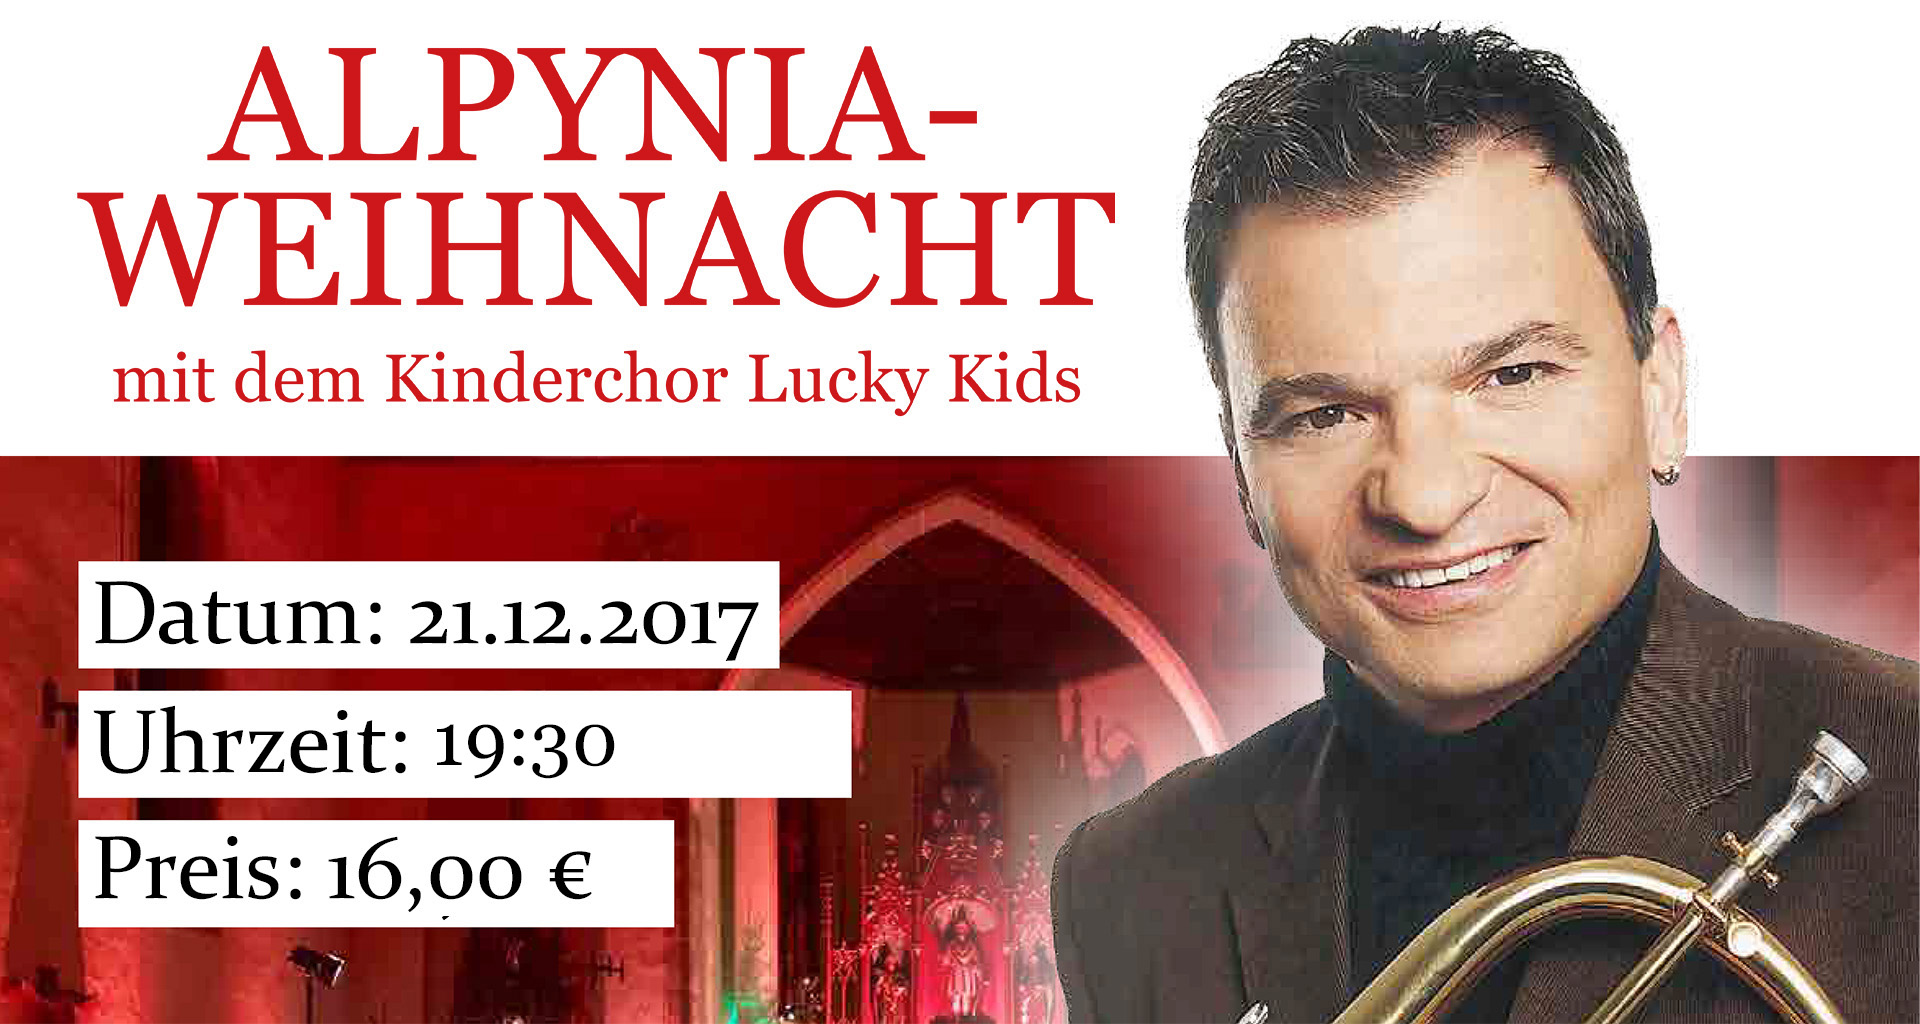 Top Event - ALPYNIA-WEIHNACHT